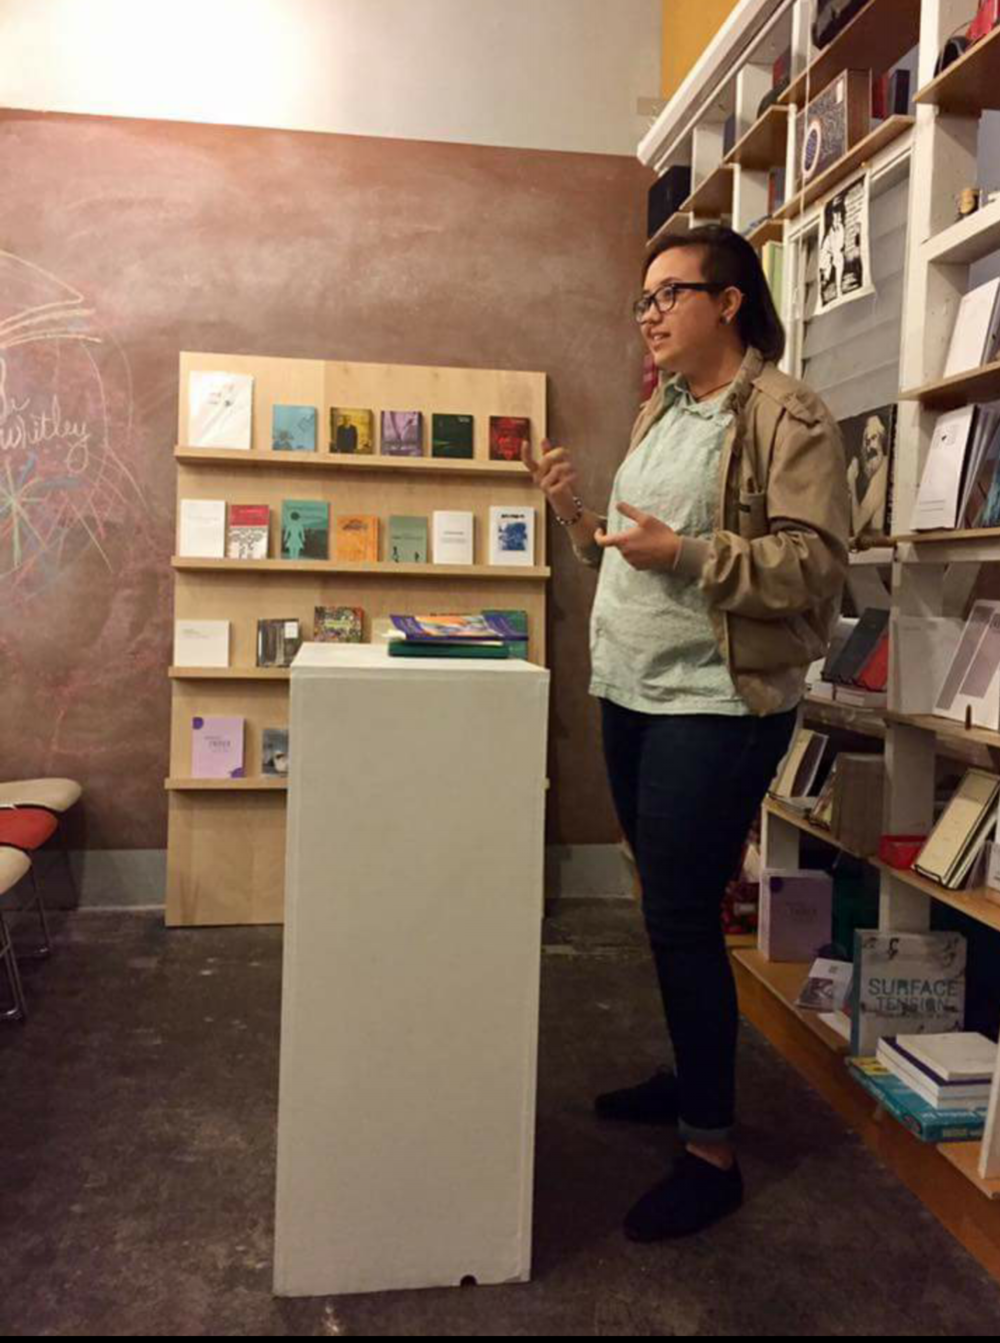 @ Bodies in Spaces Forced to Accommodate reading at the Poetic Research Bureau in Chinatown, Los Angeles, CA 3.17.17 Photo by:  Kimberly AlidioSison